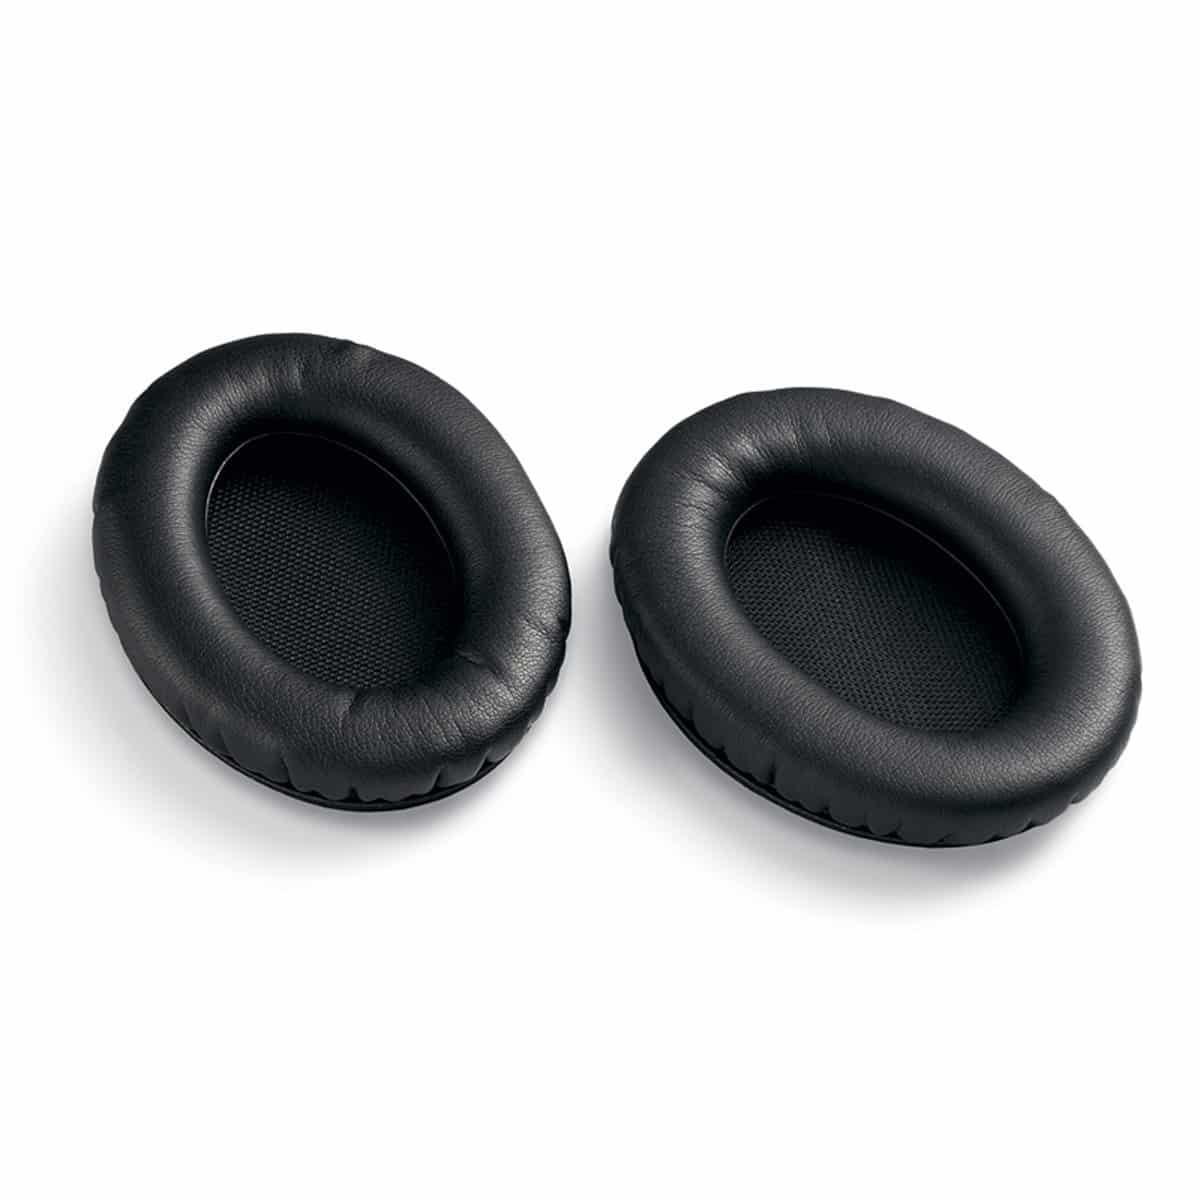 Bose QC15 Black Ear Pads